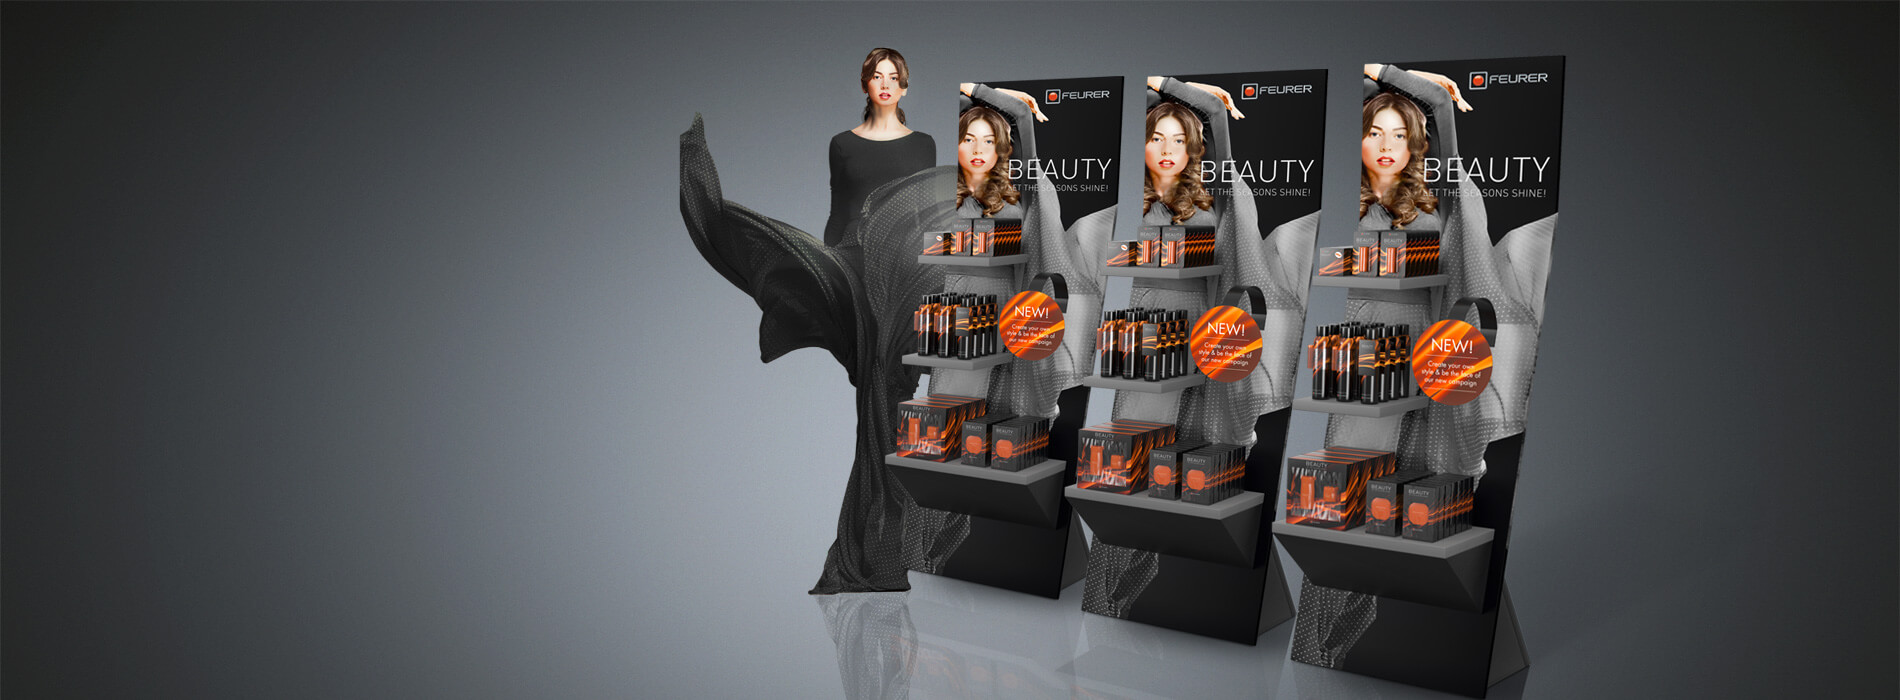 packaging packaging solution co-packing cosmetics contract packager beauty